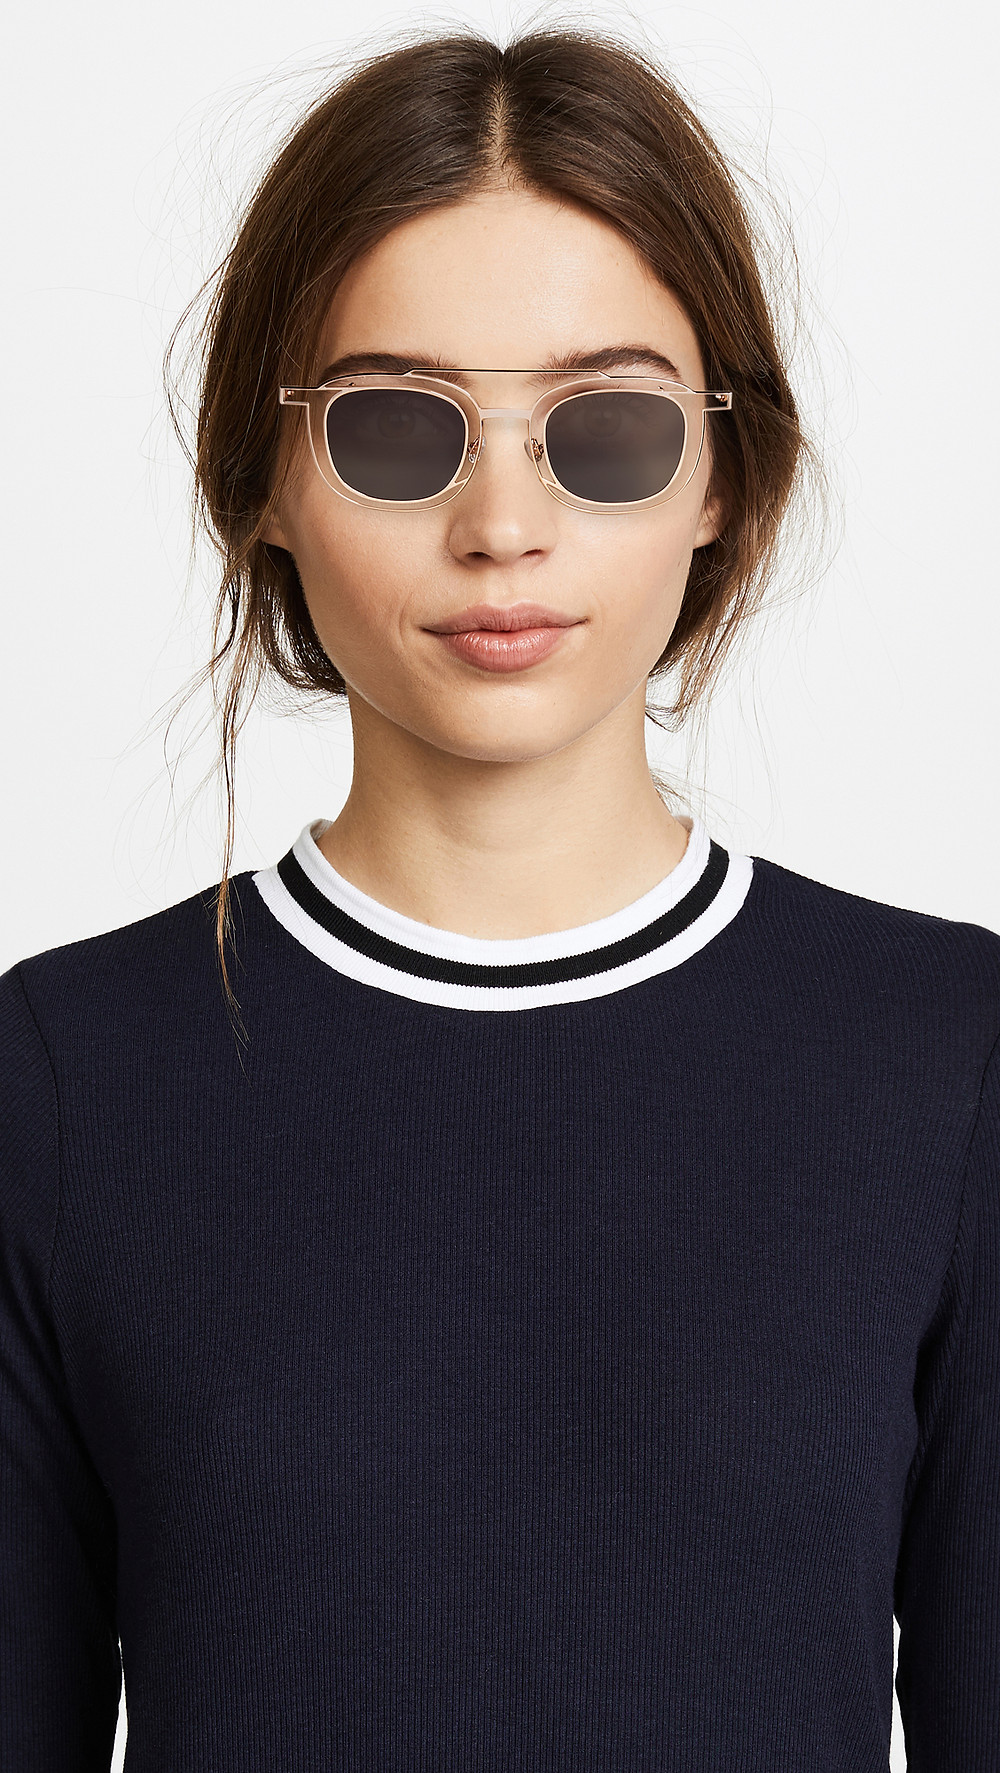 Thierry Lasry Gendery Sunglasses $575